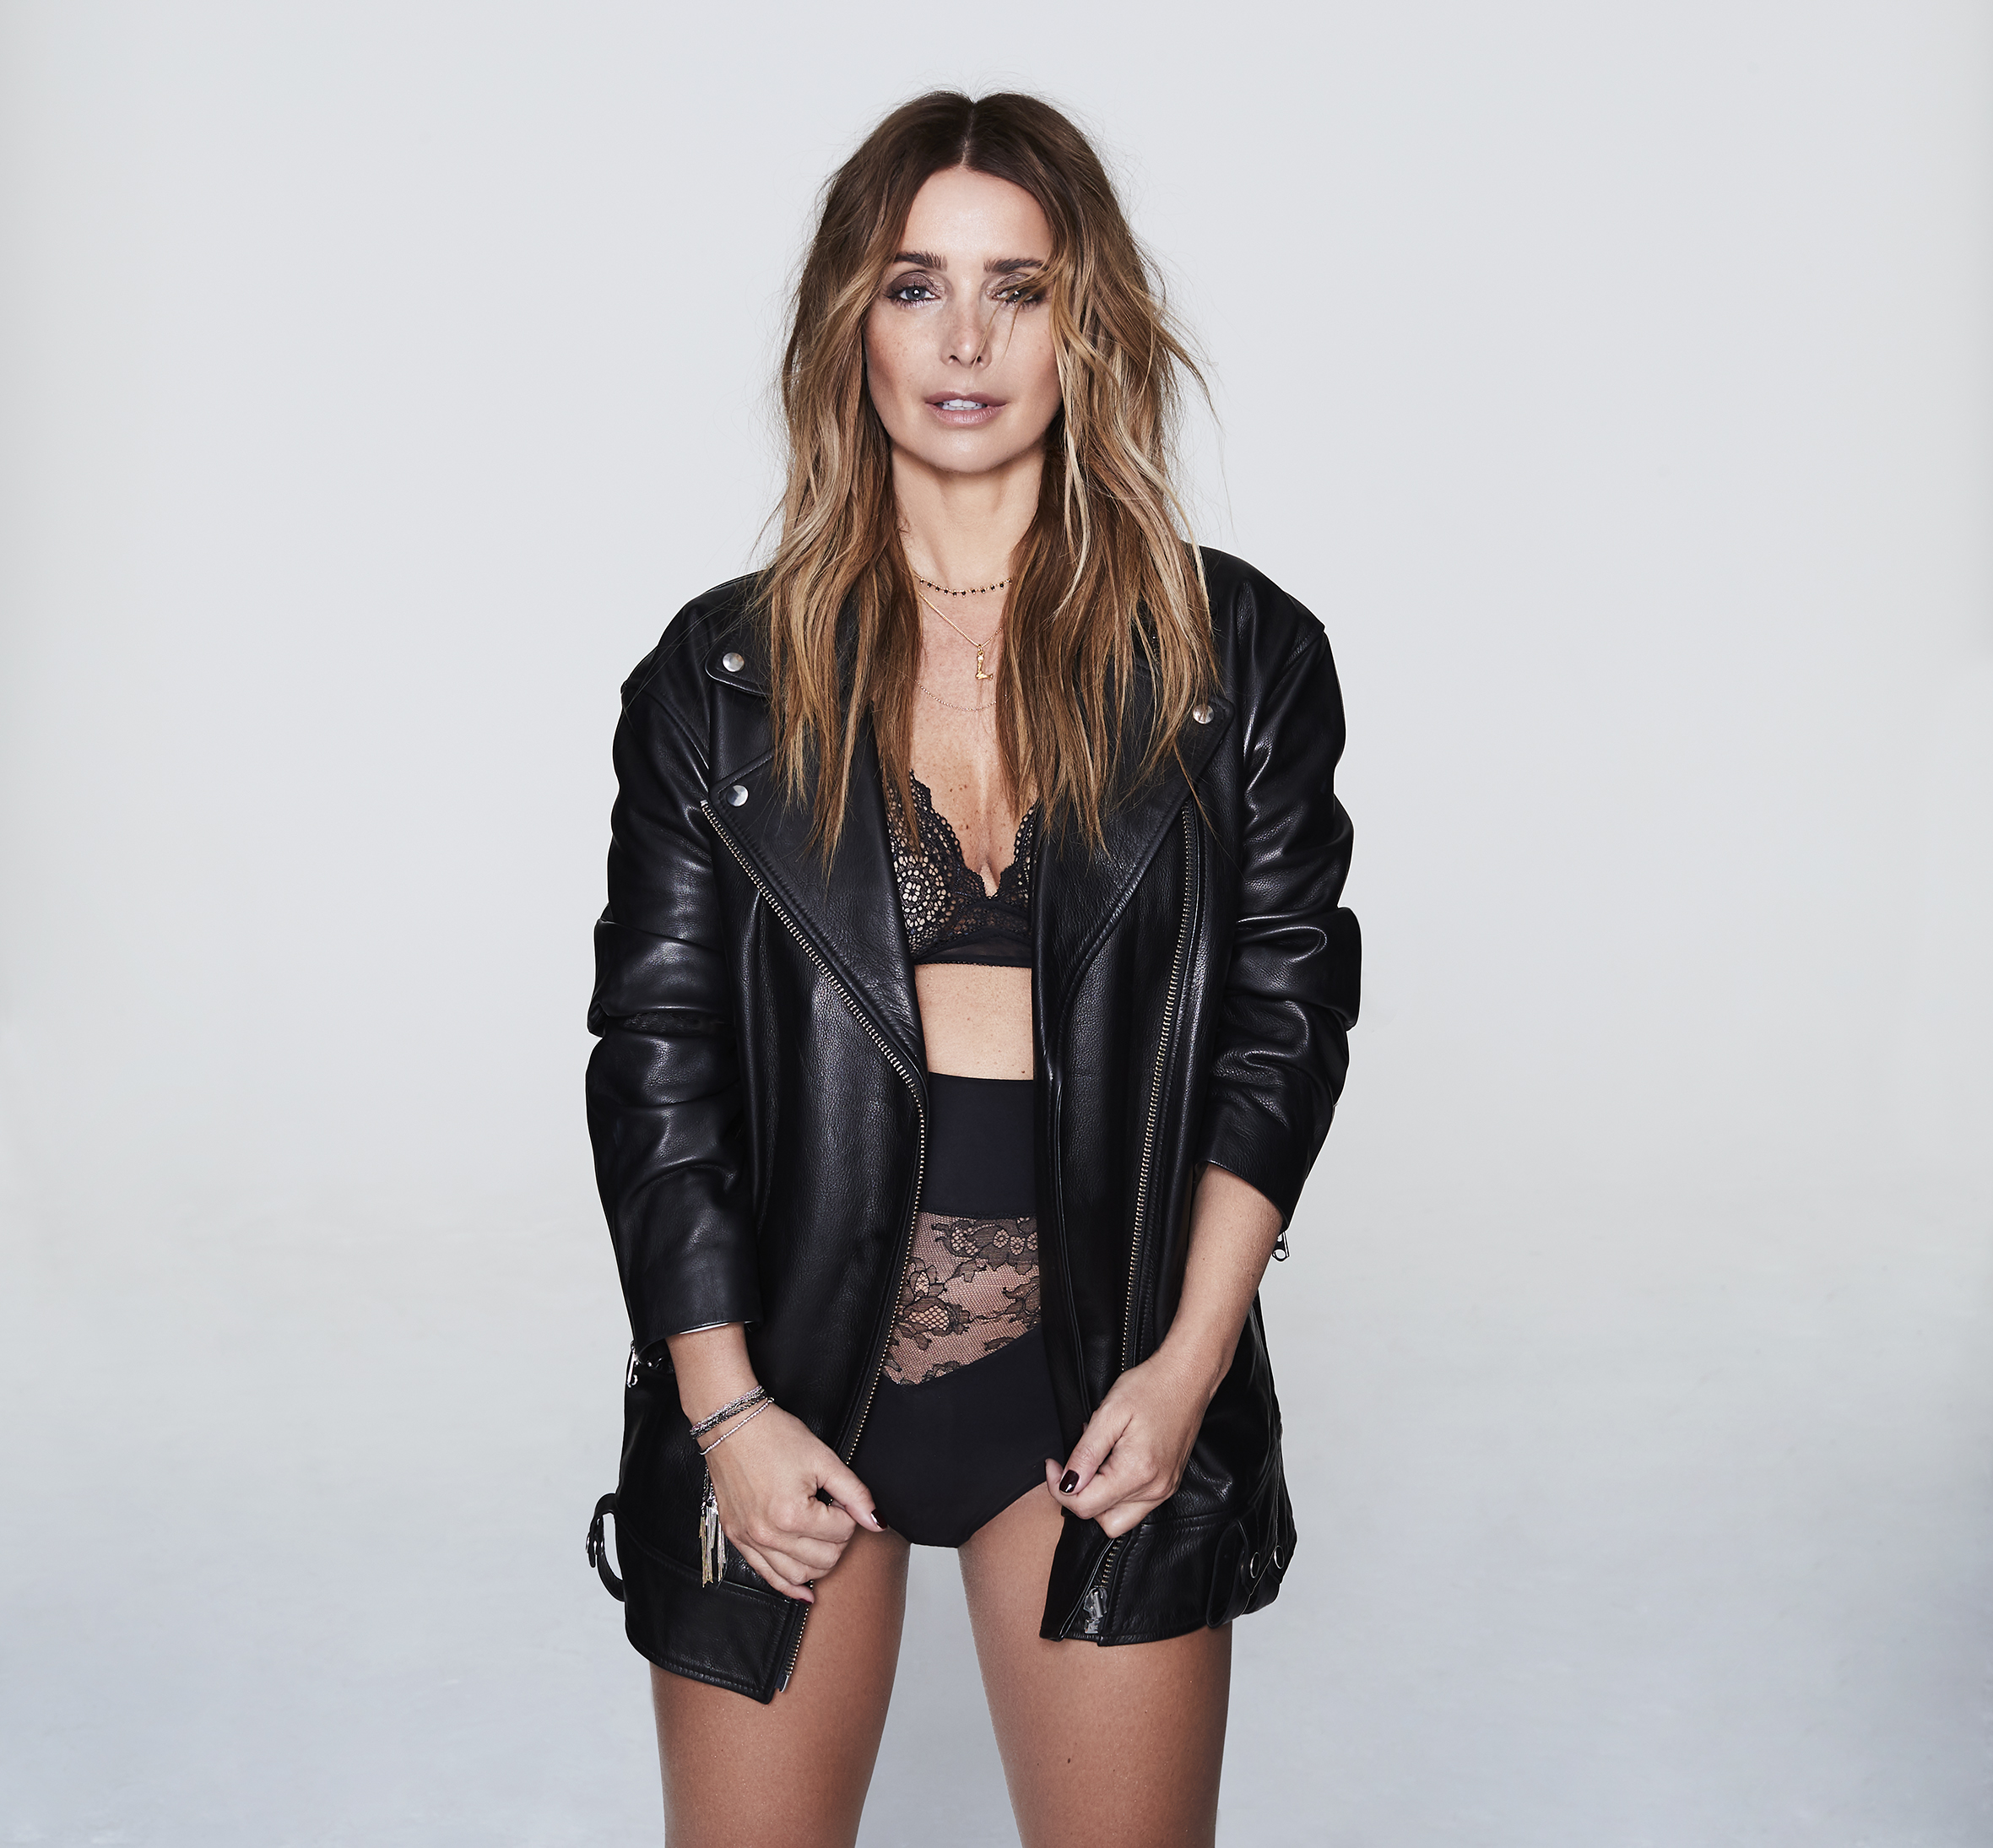 Louise Redknapp reveals behind the scenes marriage struggles in honest new  book - 247 News Around The World